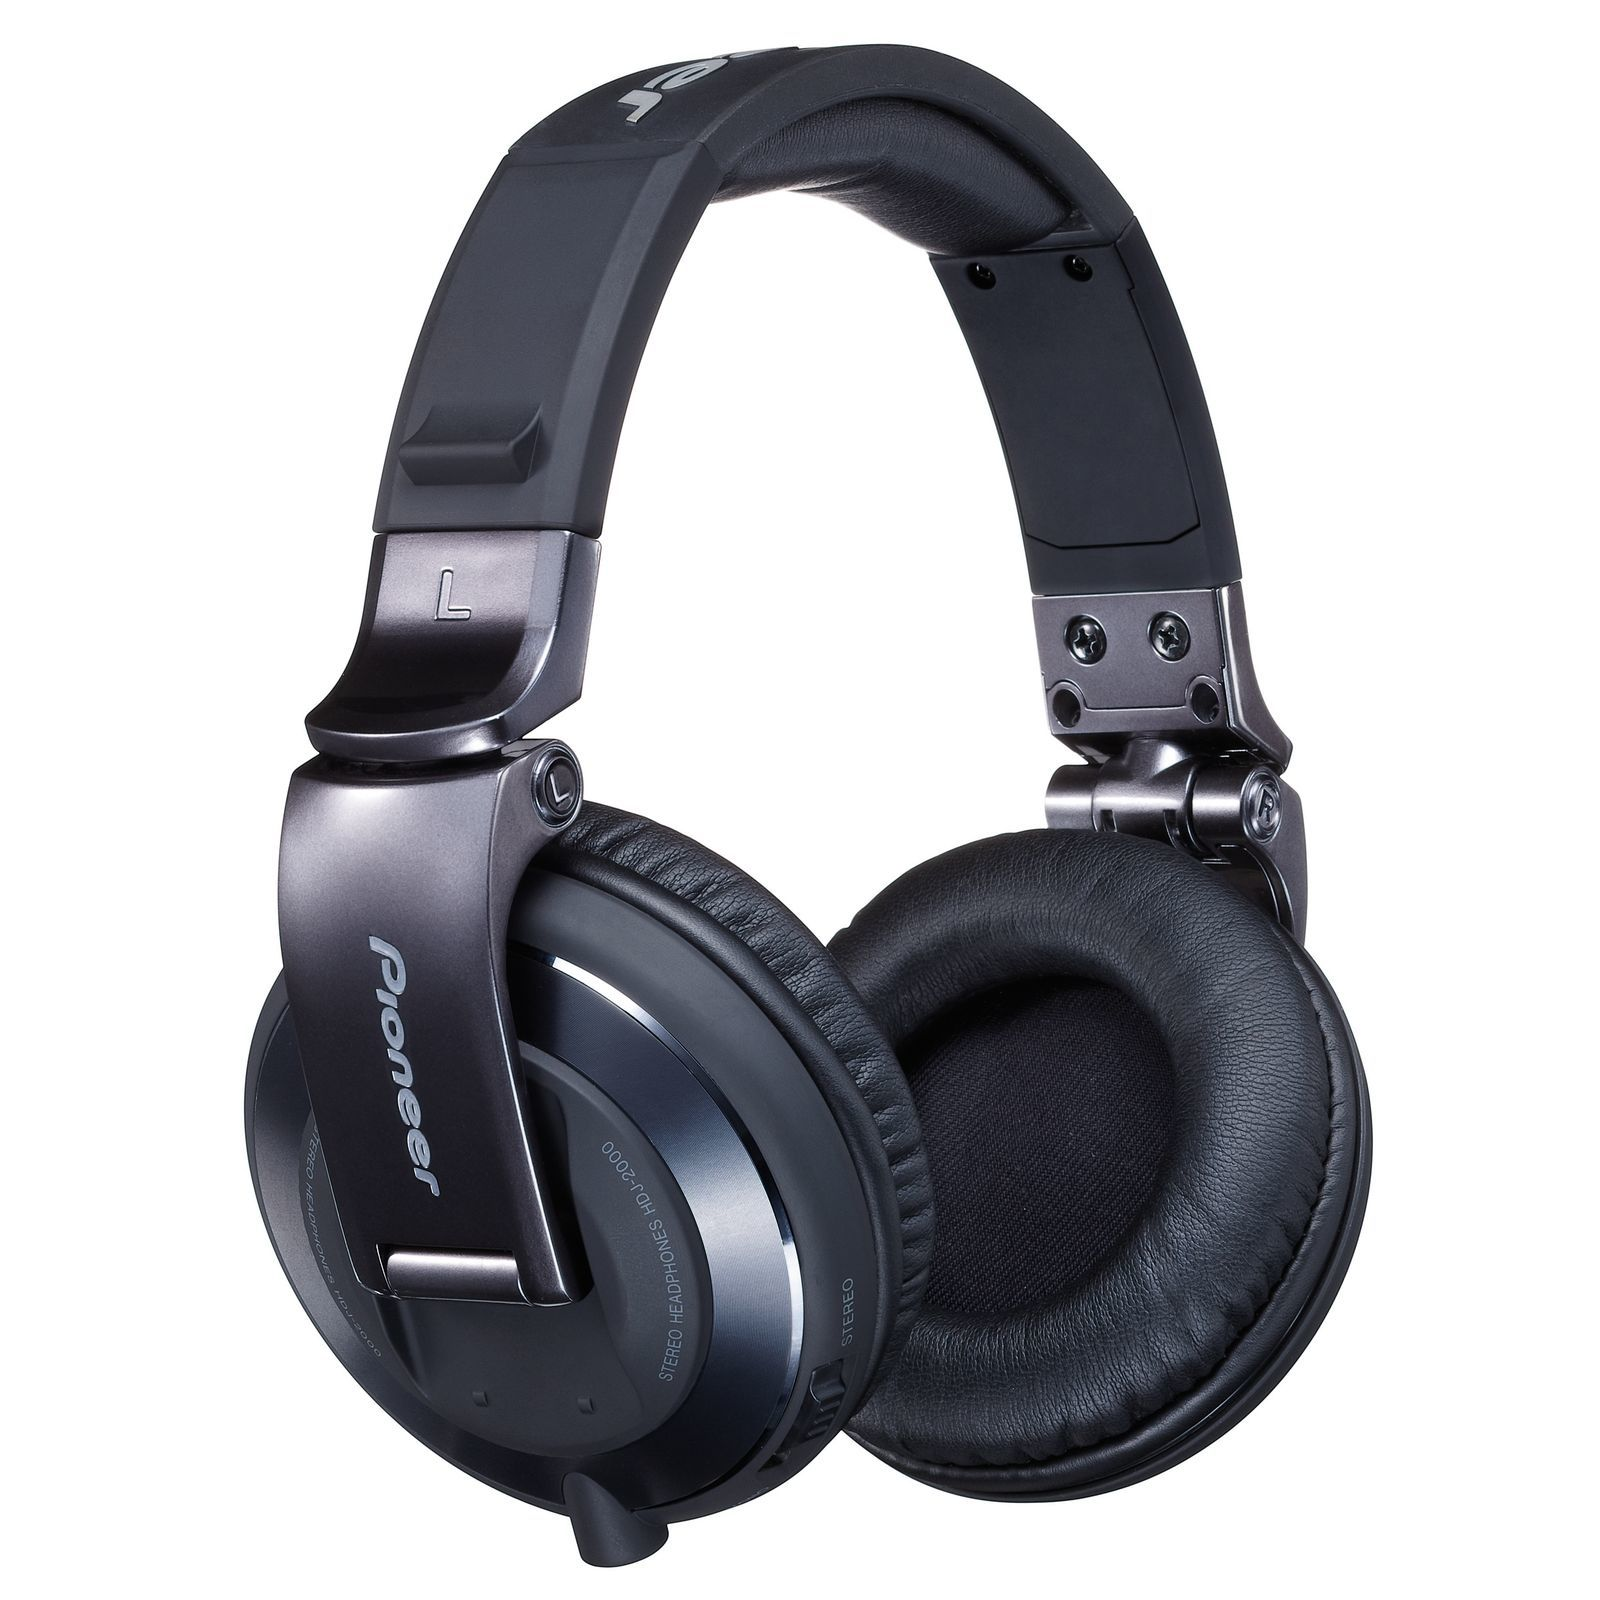 Pioneer DJ HDJ-2000-K High-End DJ Headphones, Black Product Image